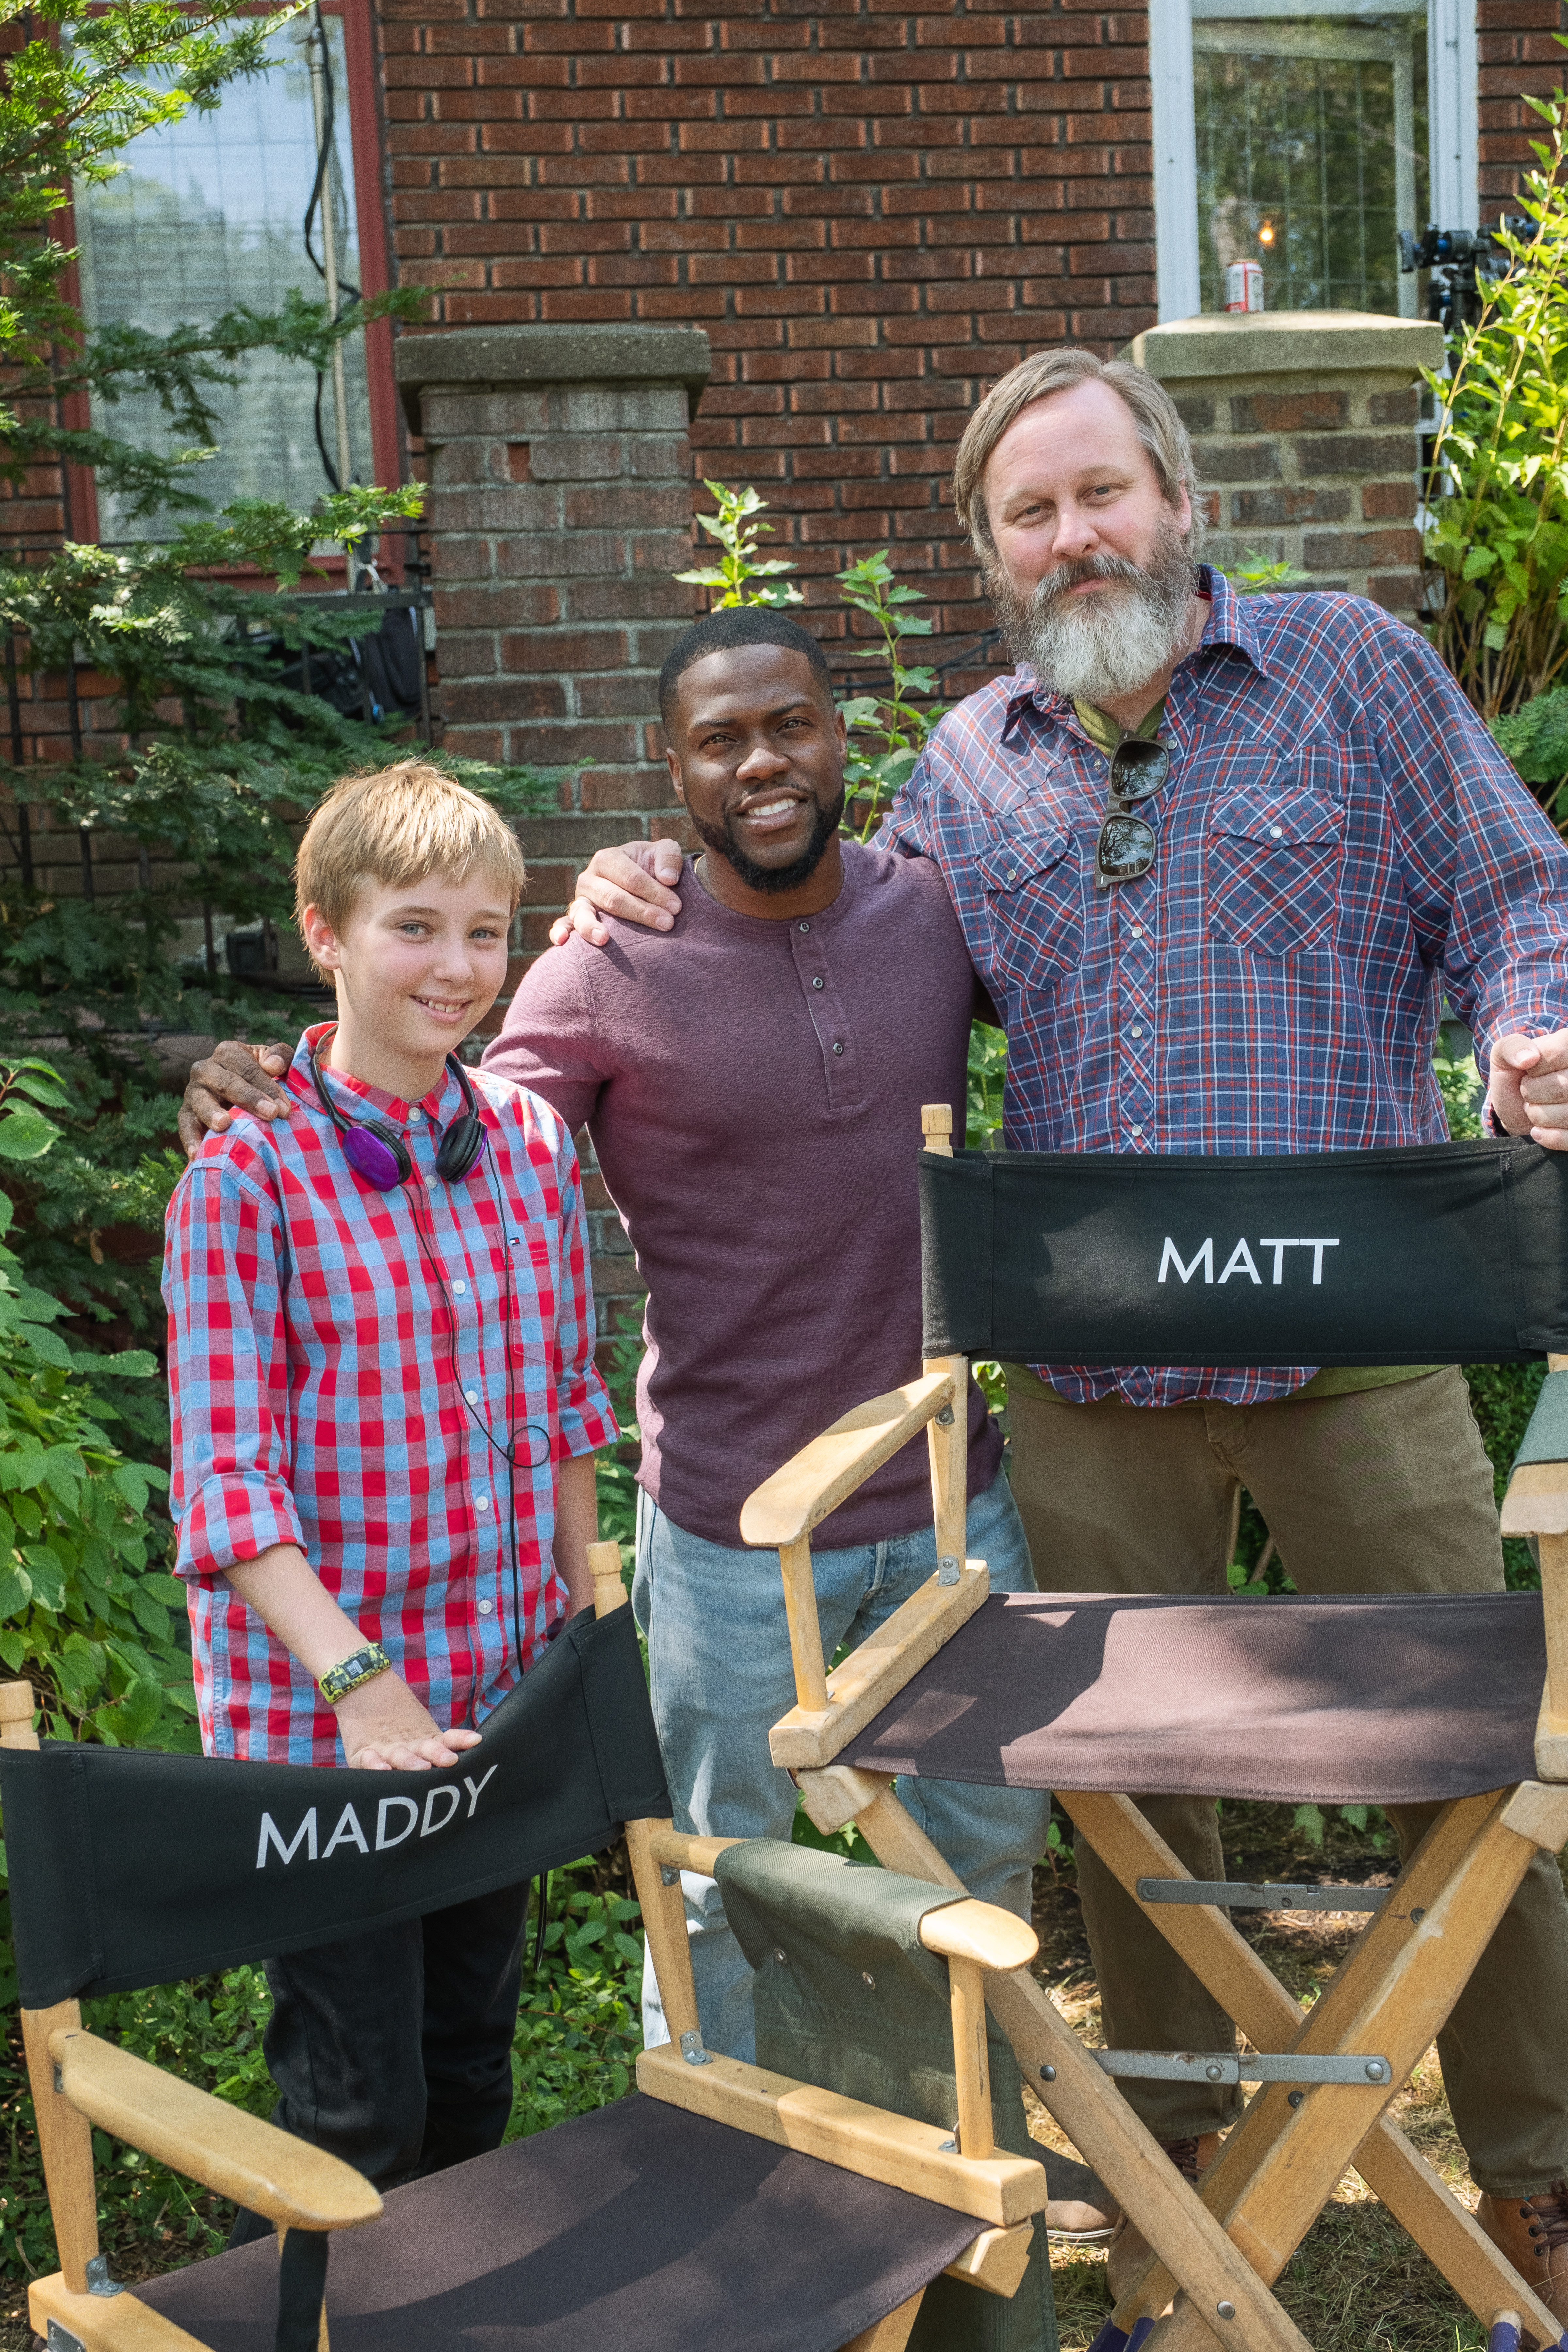 Behind the scenes on 'Fatherhood' with Matt Logelin and his daughter Maddy, and Kevin Hart